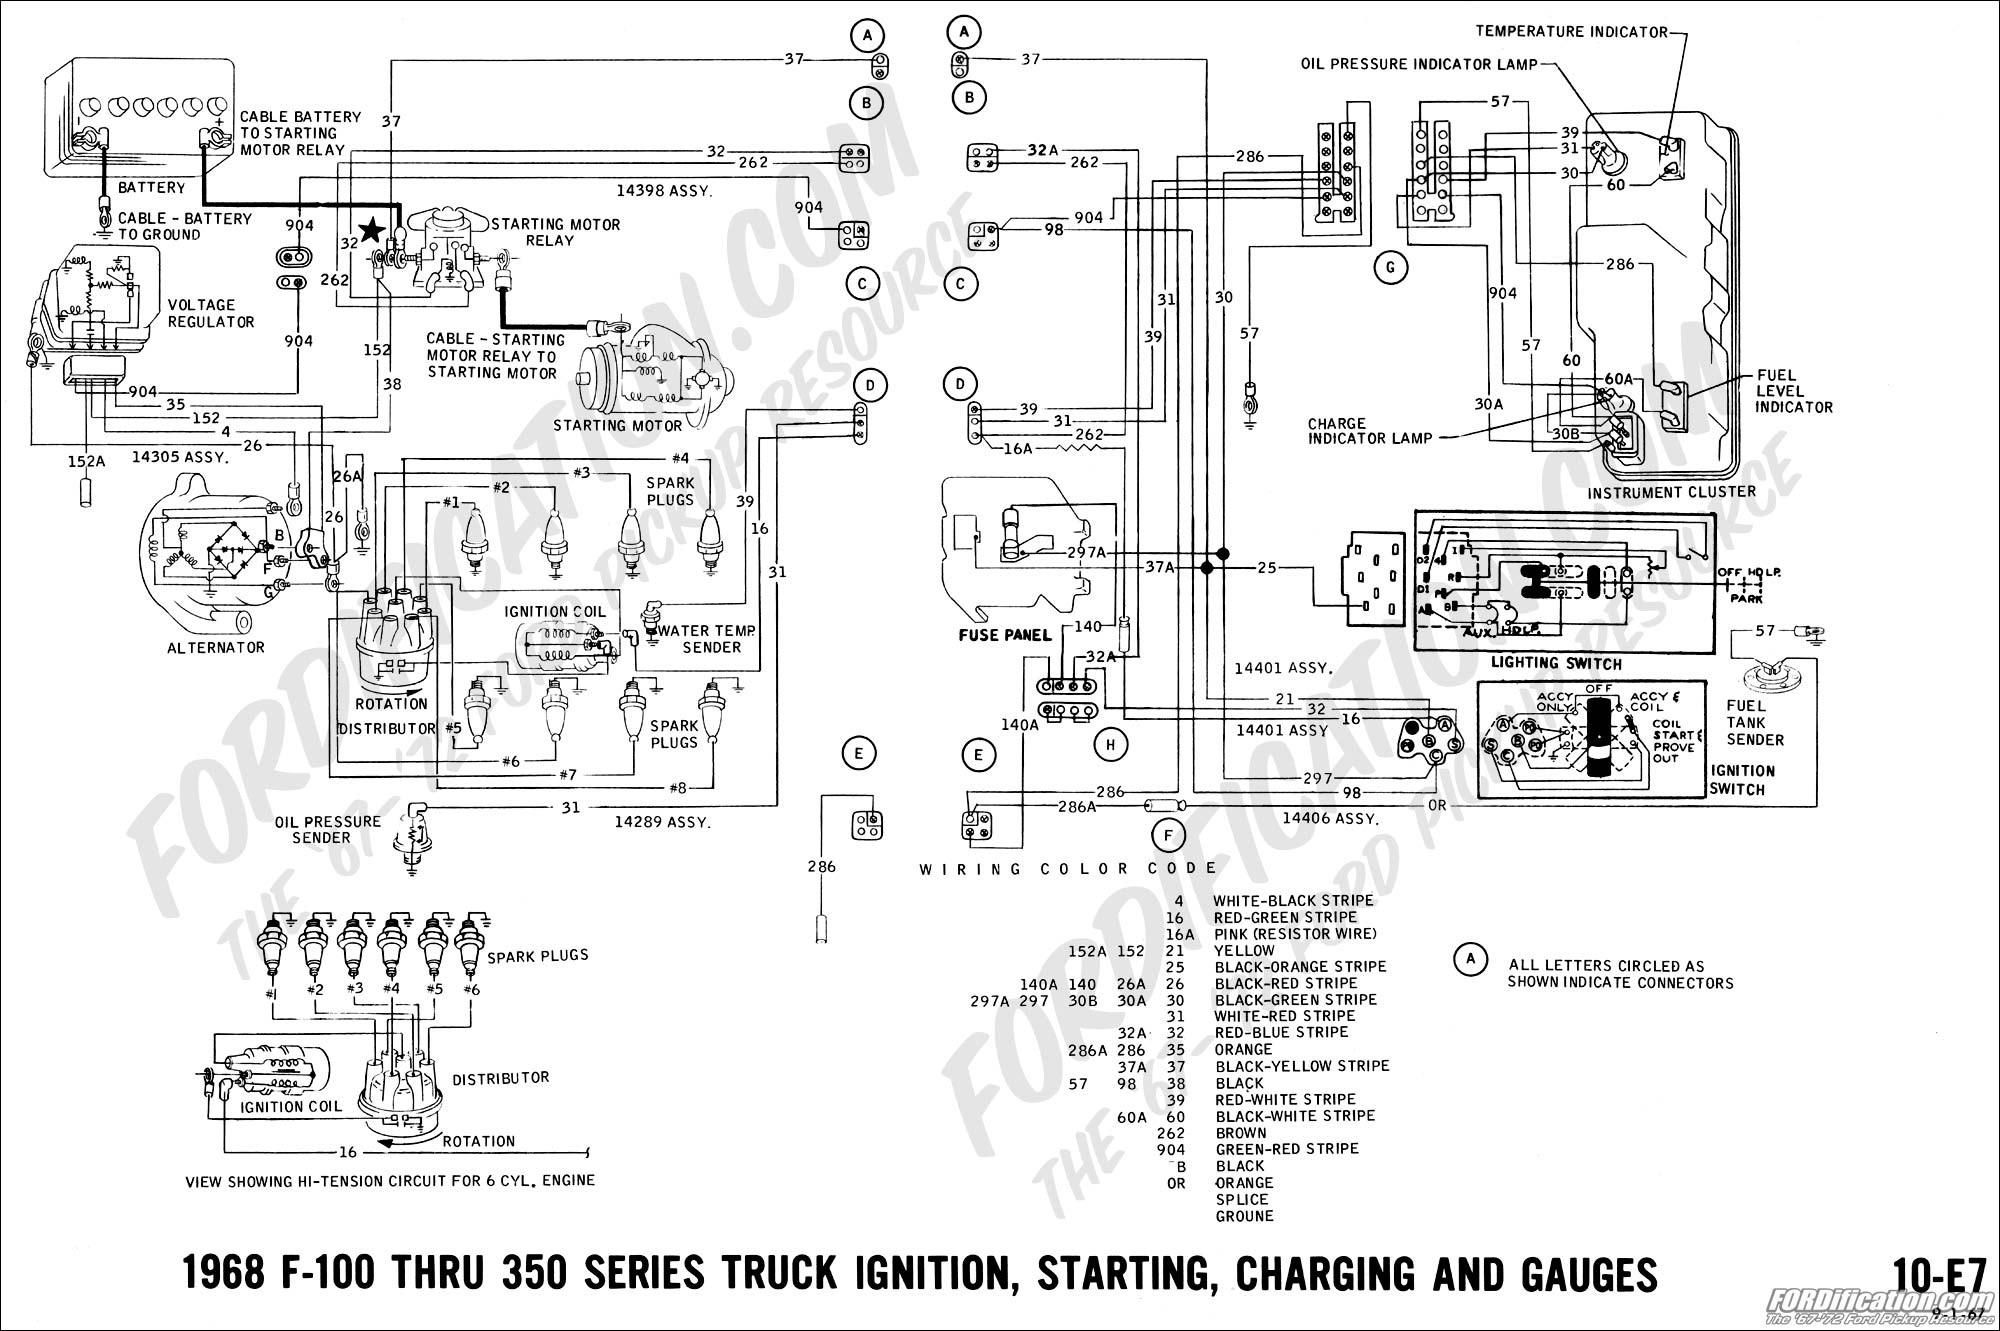 2001 Ford Explorer Engine Diagram I Need The Wiring For A 1996 Truck Technical Drawings And Schematics Section H Of